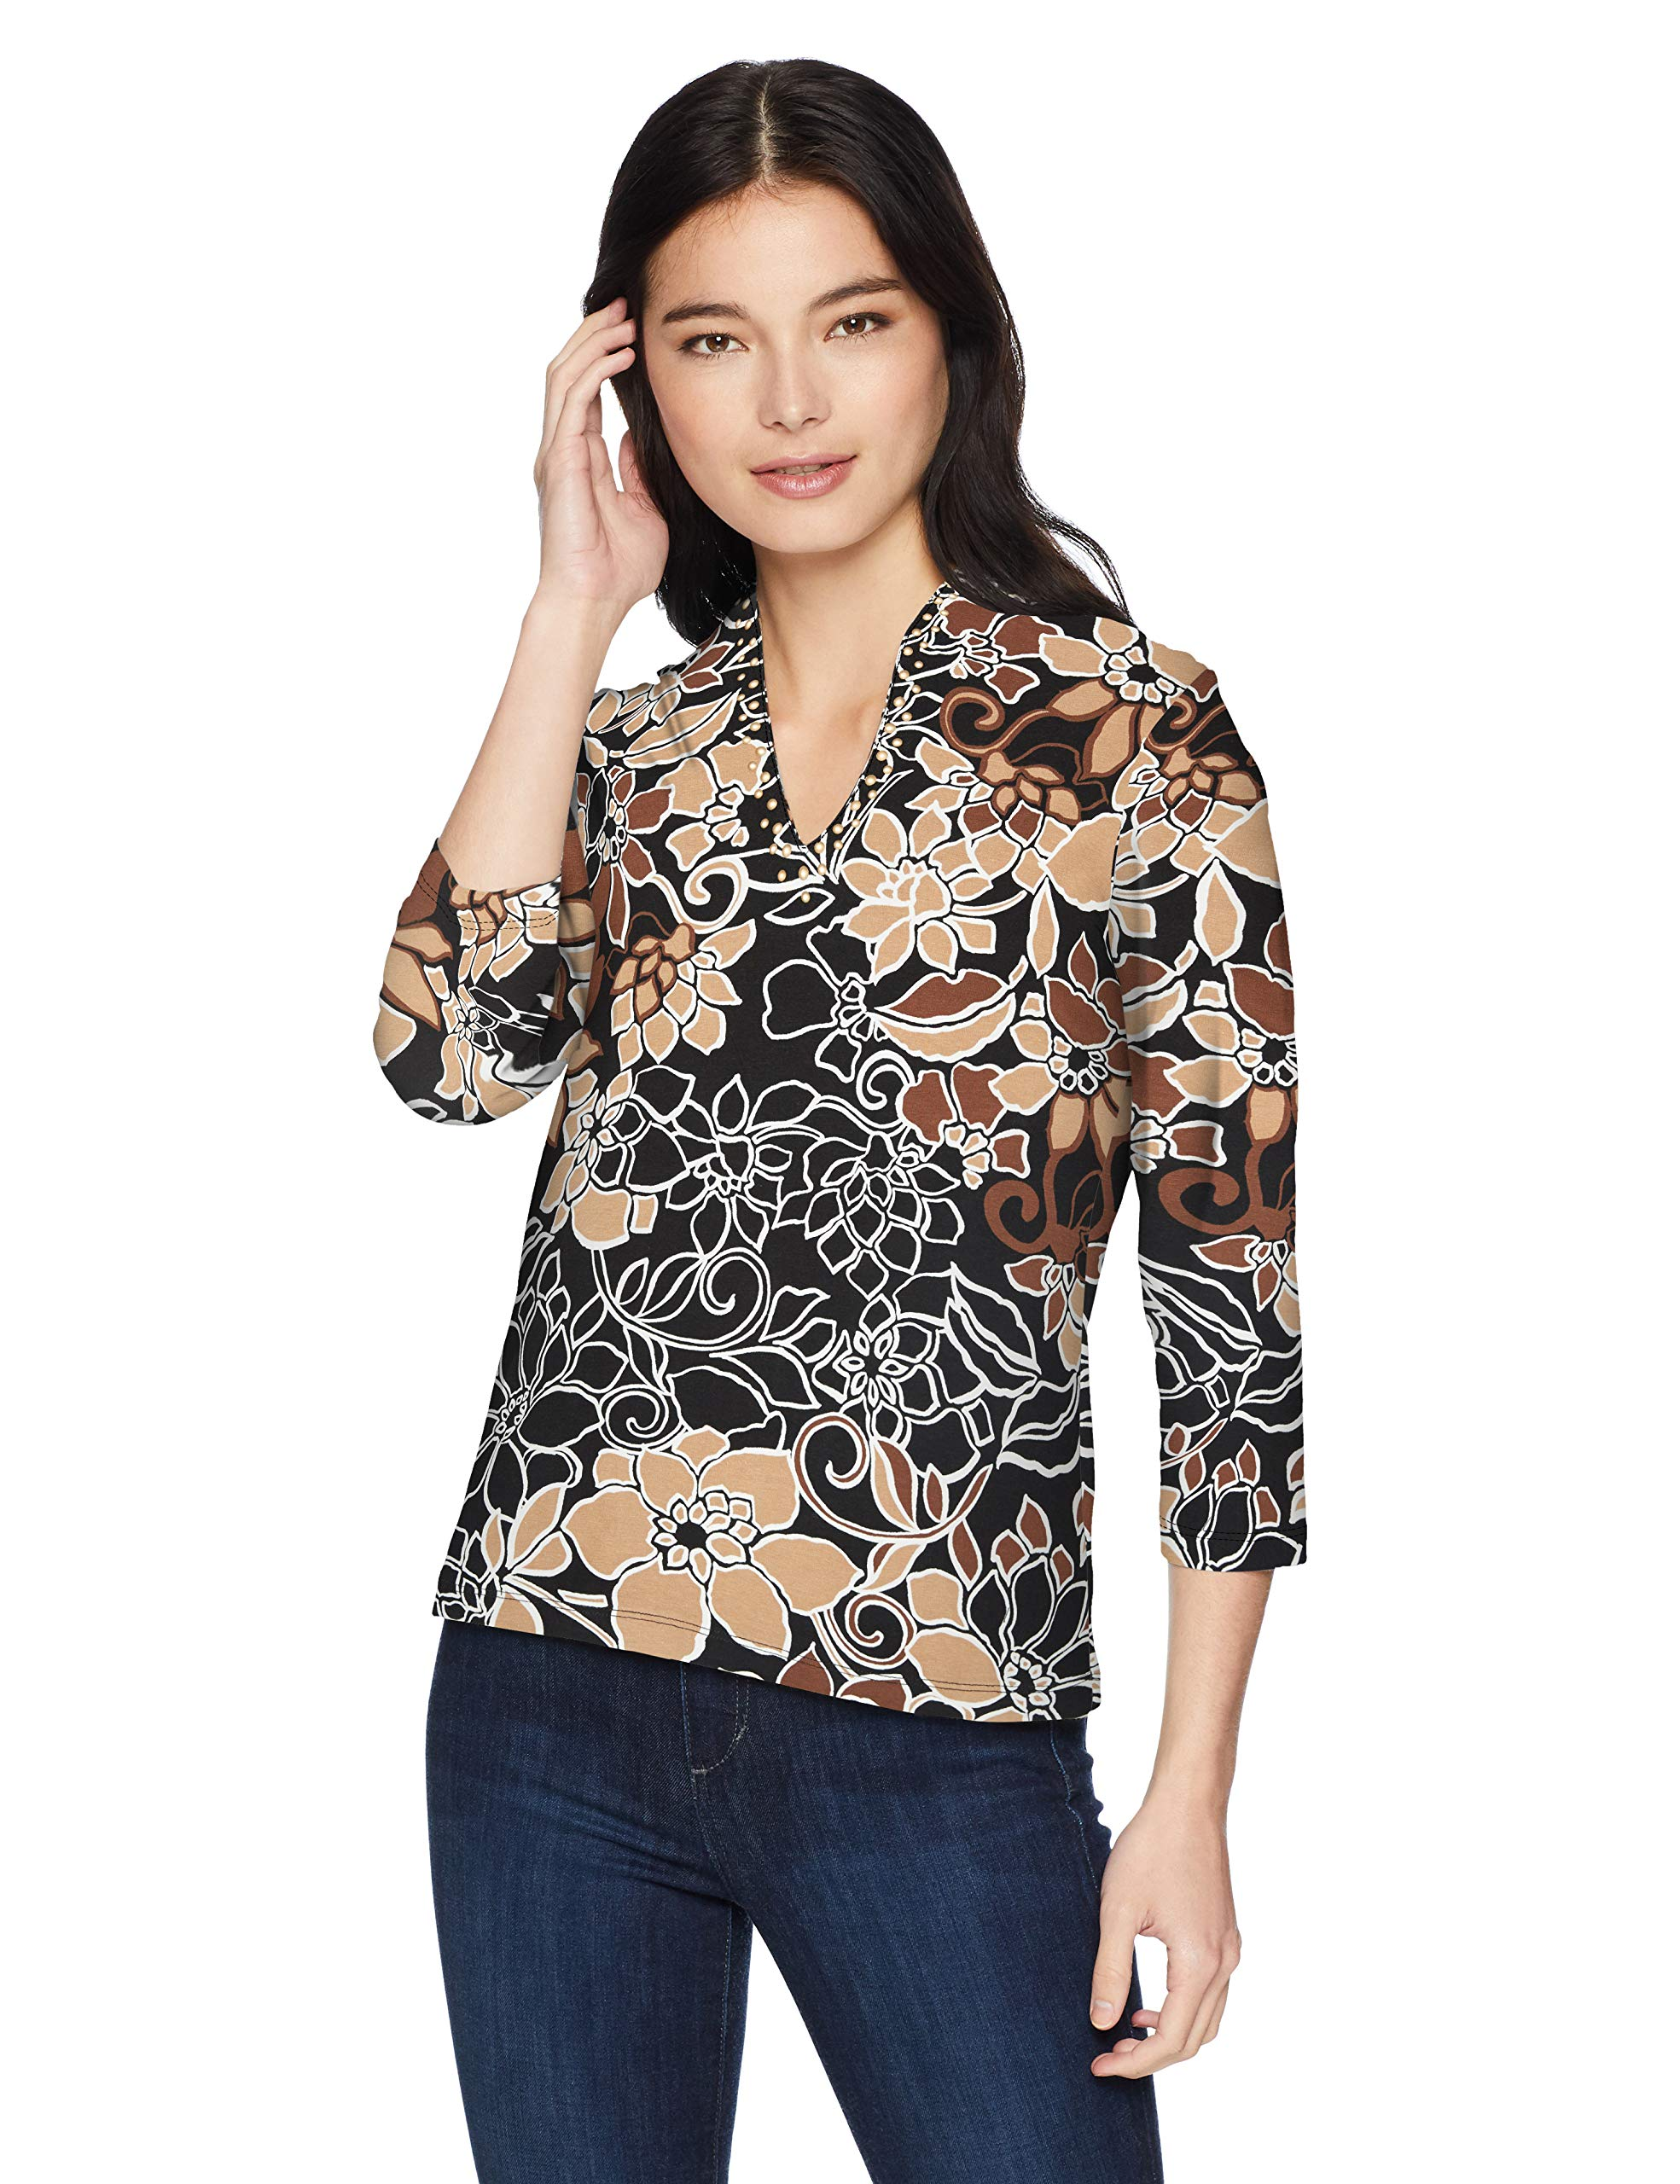 Ruby Rd. Women's Petite Size 3/4 Sleeve Funnel-Neck Floral Cotton Knit Top, Embellished Brandy Fall Floral, PL